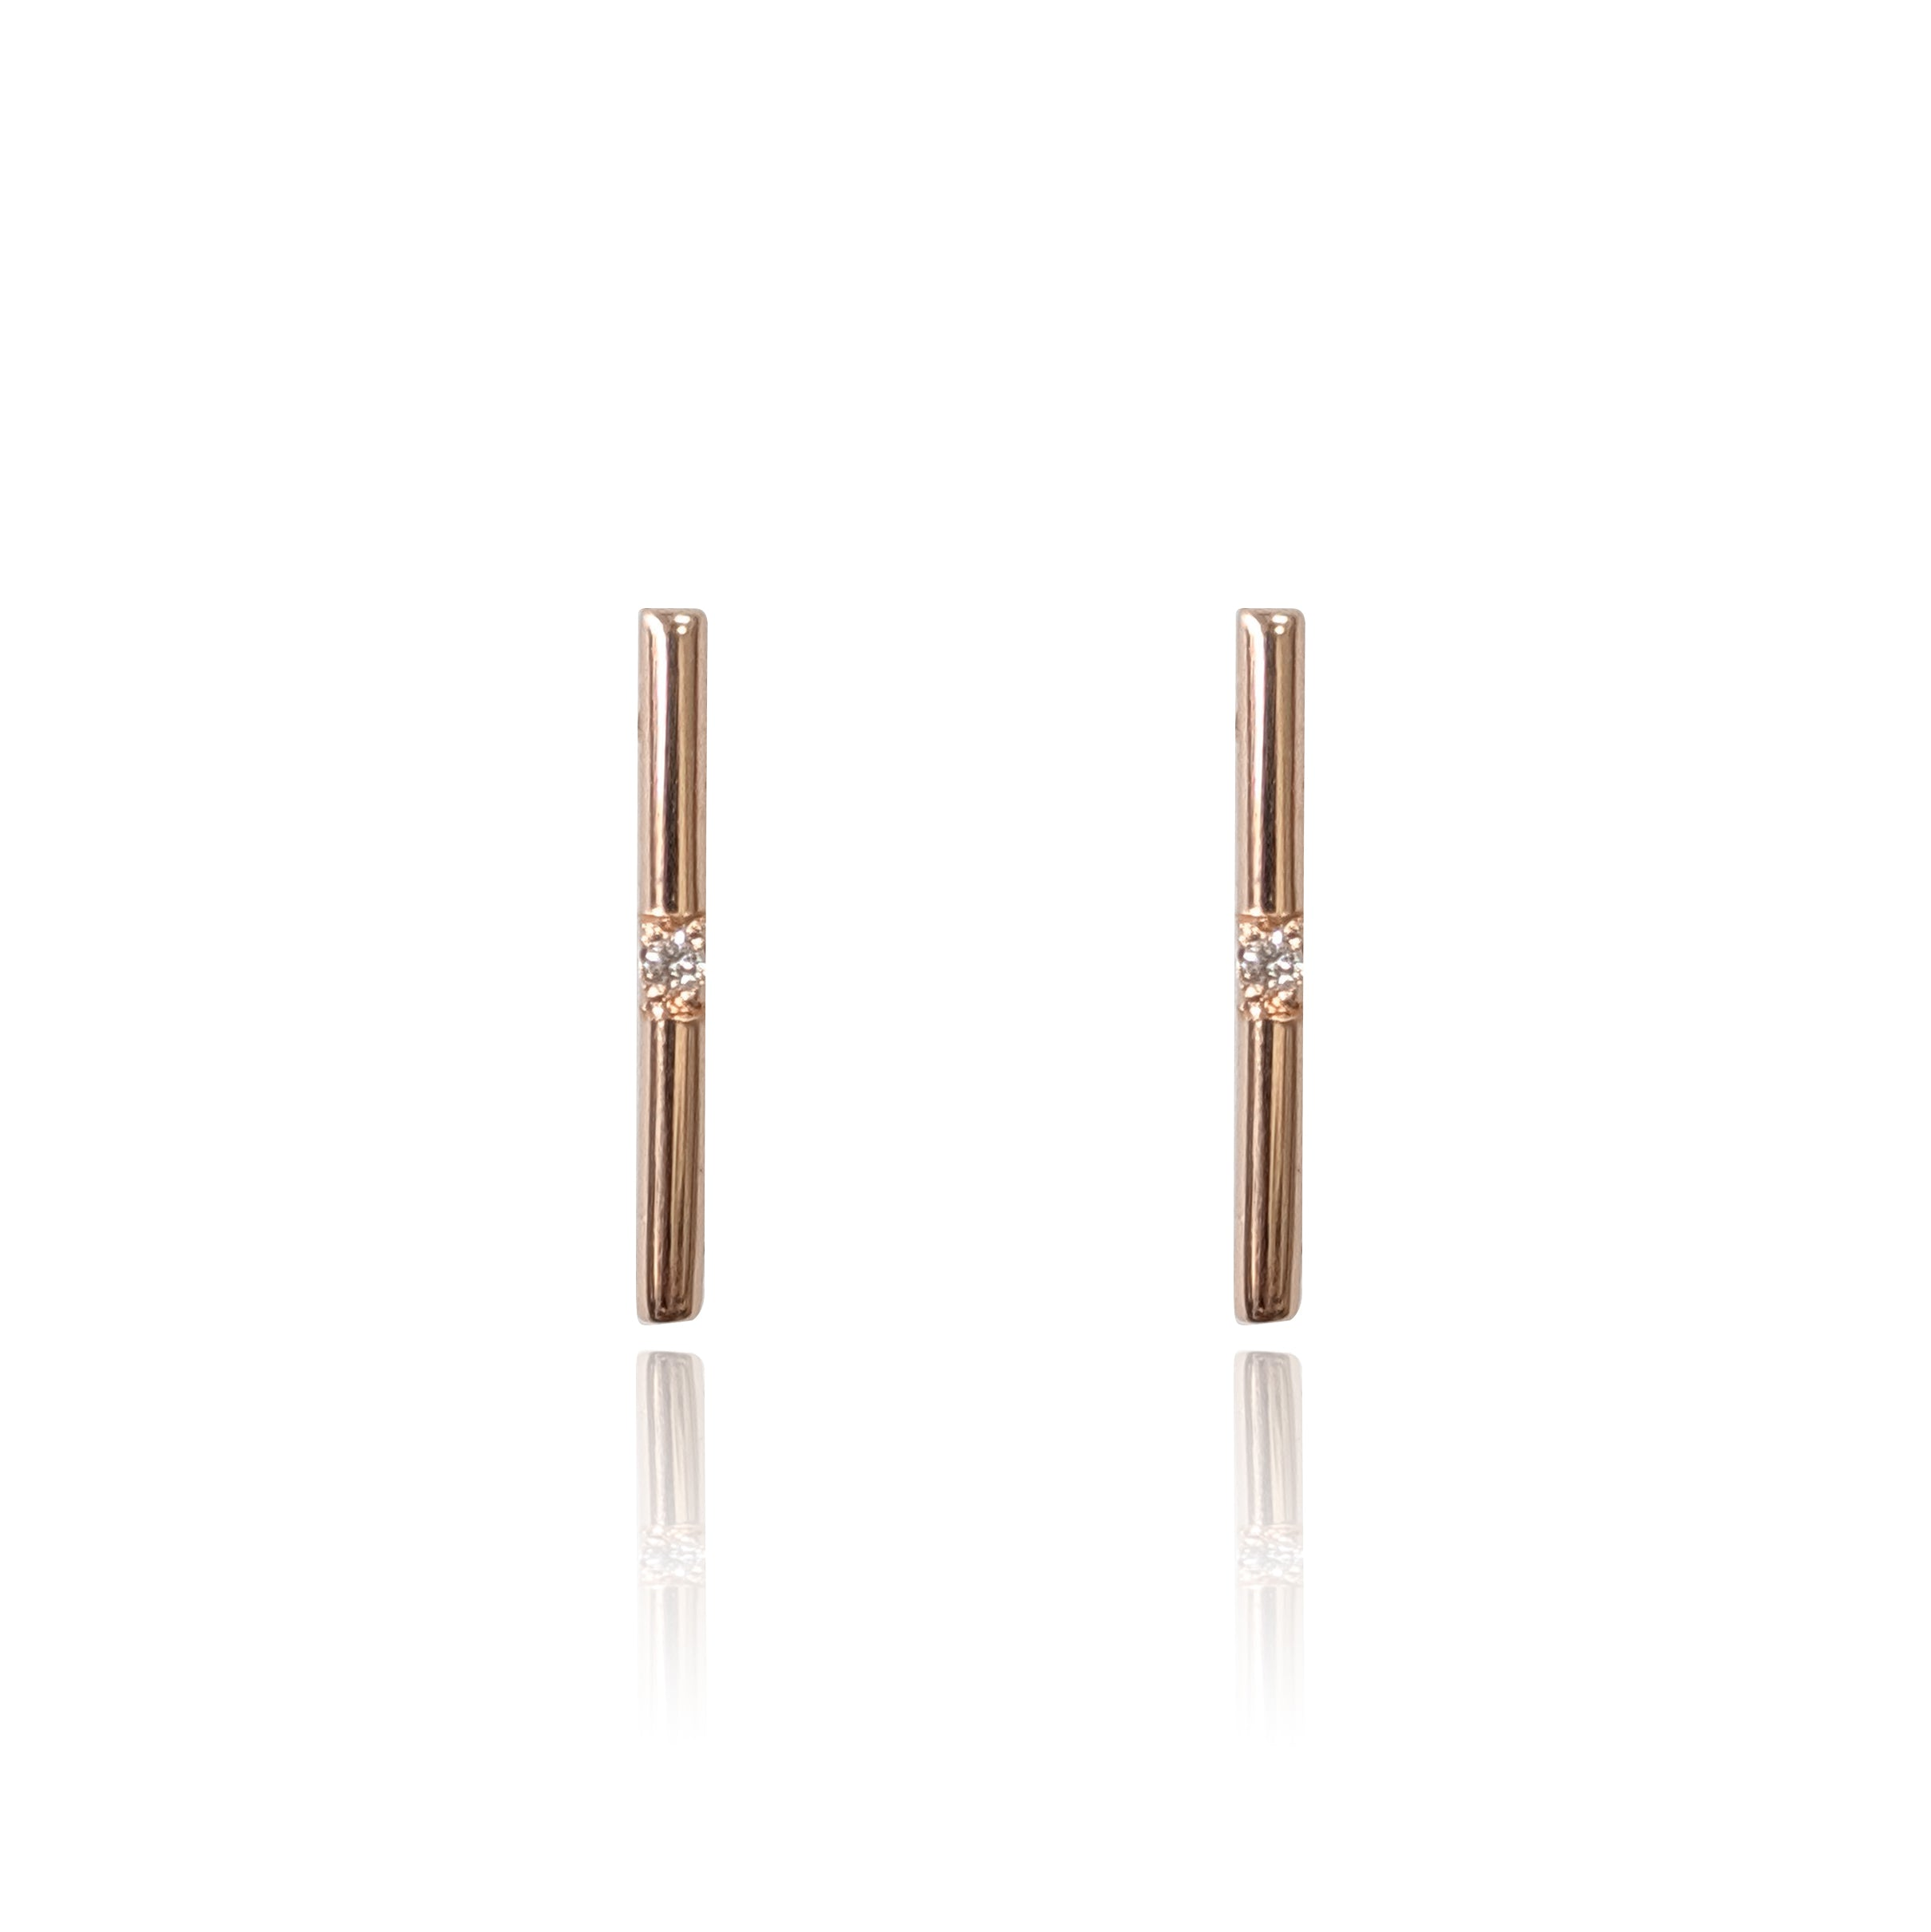 The Minimalist Earrings